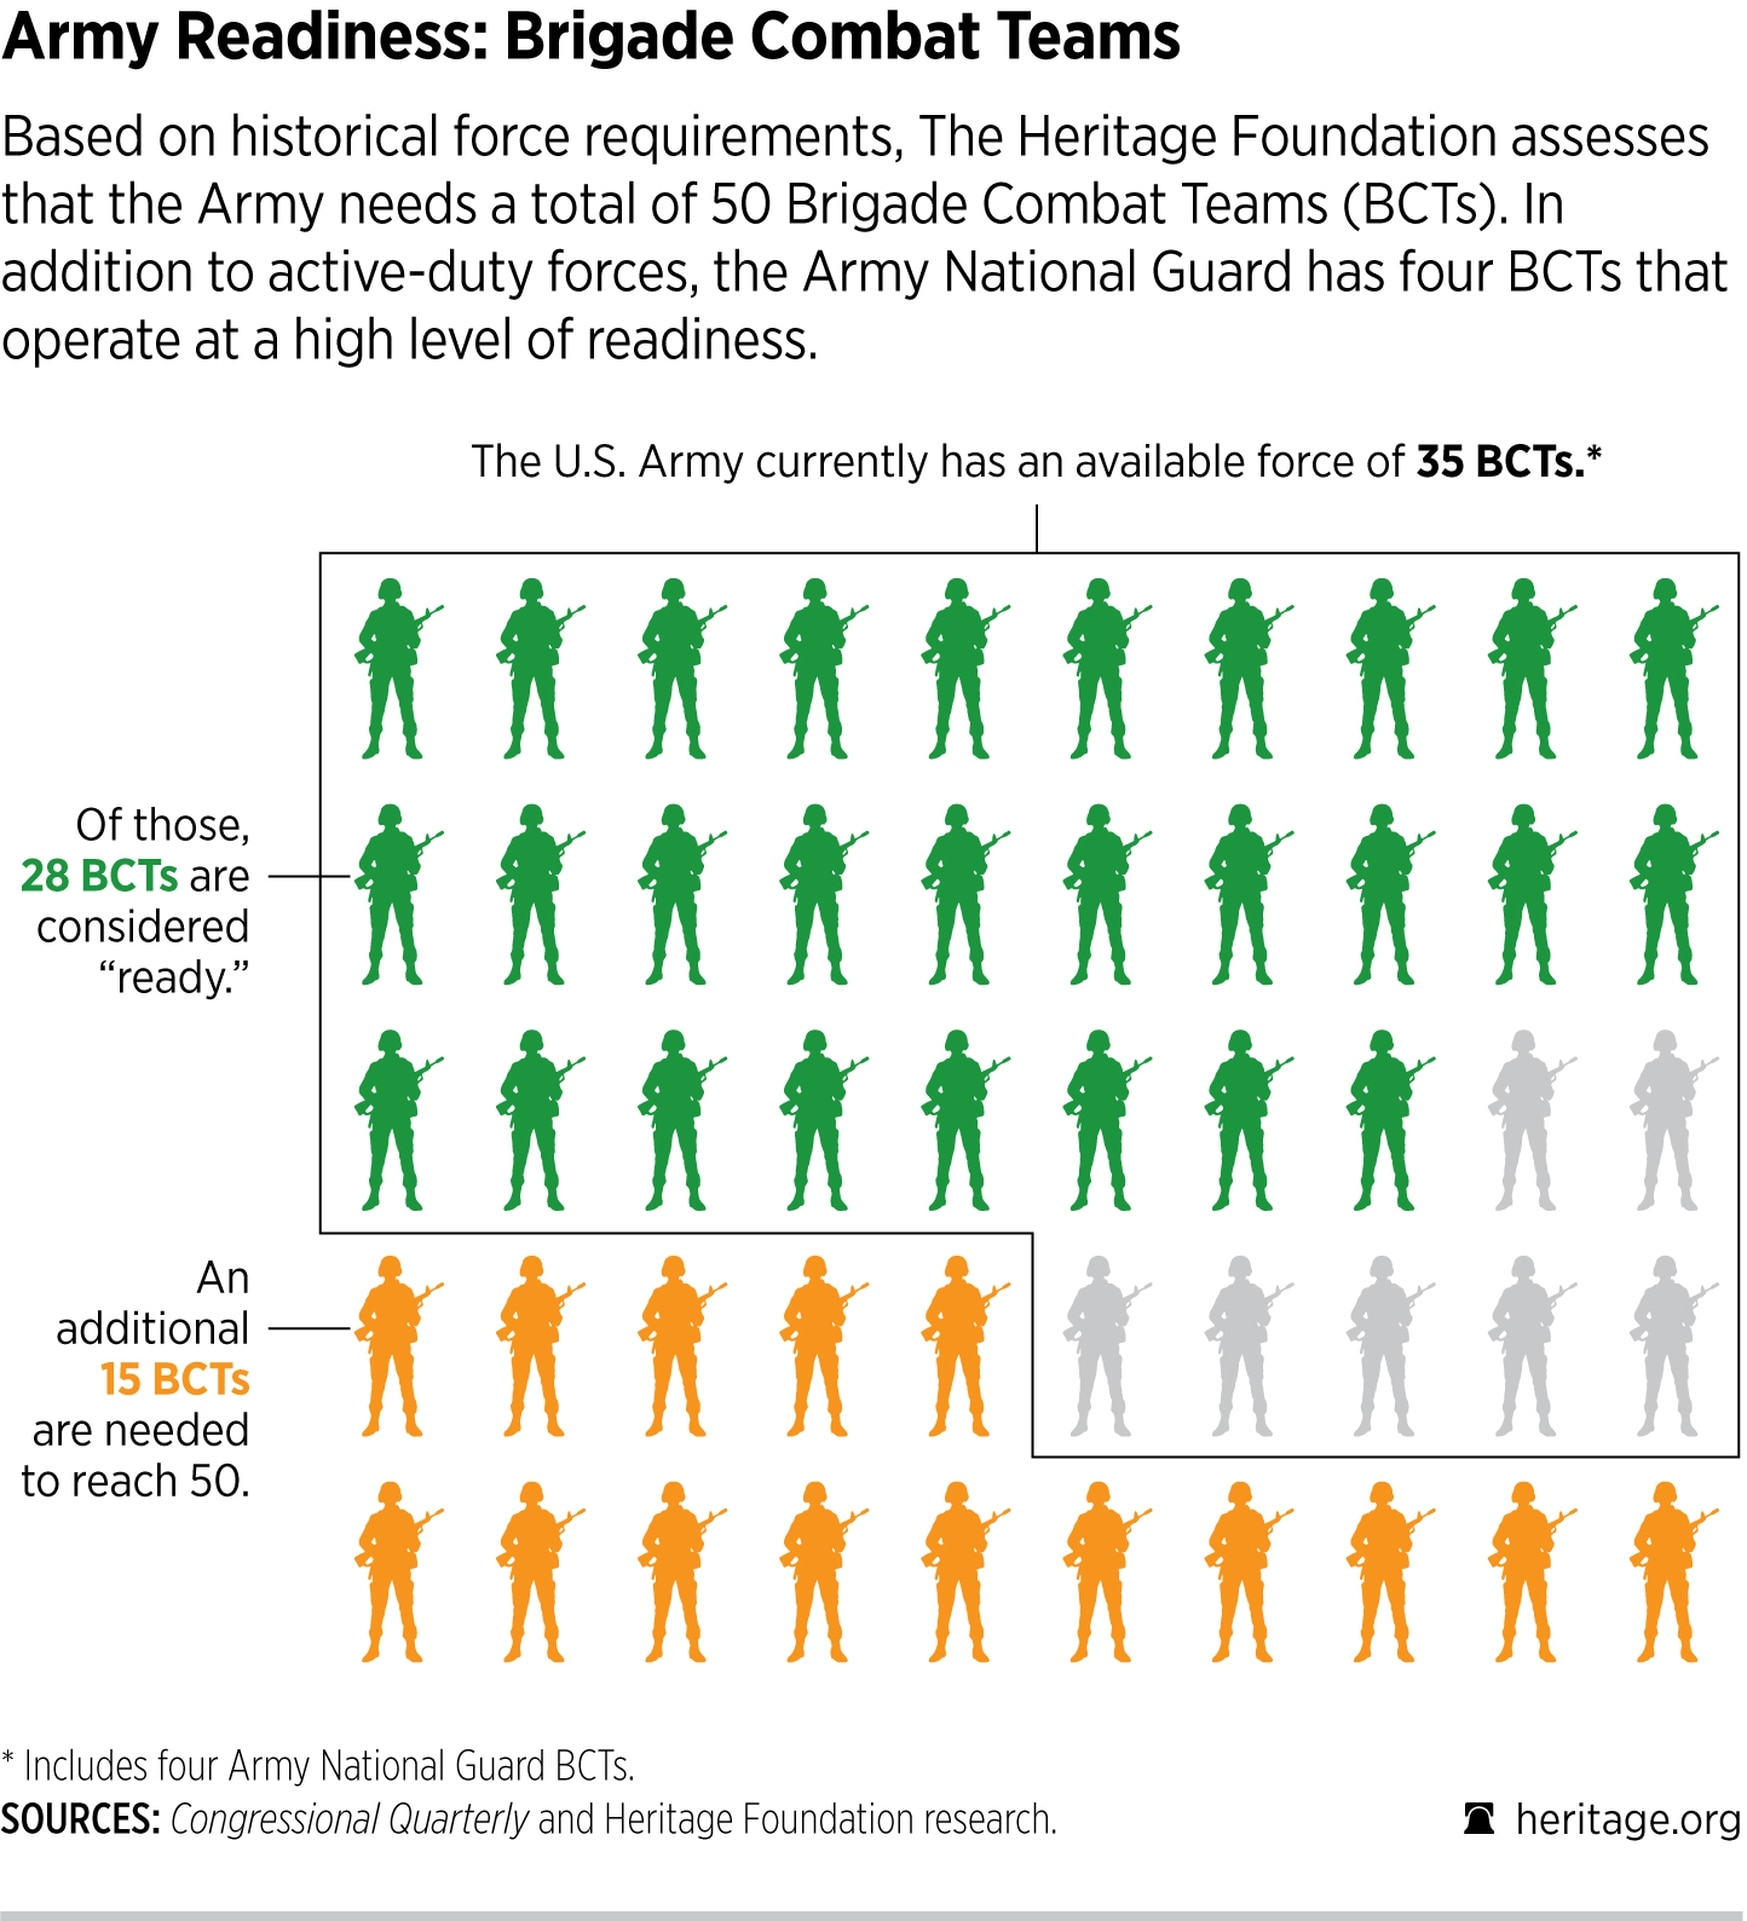 The Heritage Foundation feels positive about U.S. Army readiness after improvements over the last few years. (Heritage Foundation)